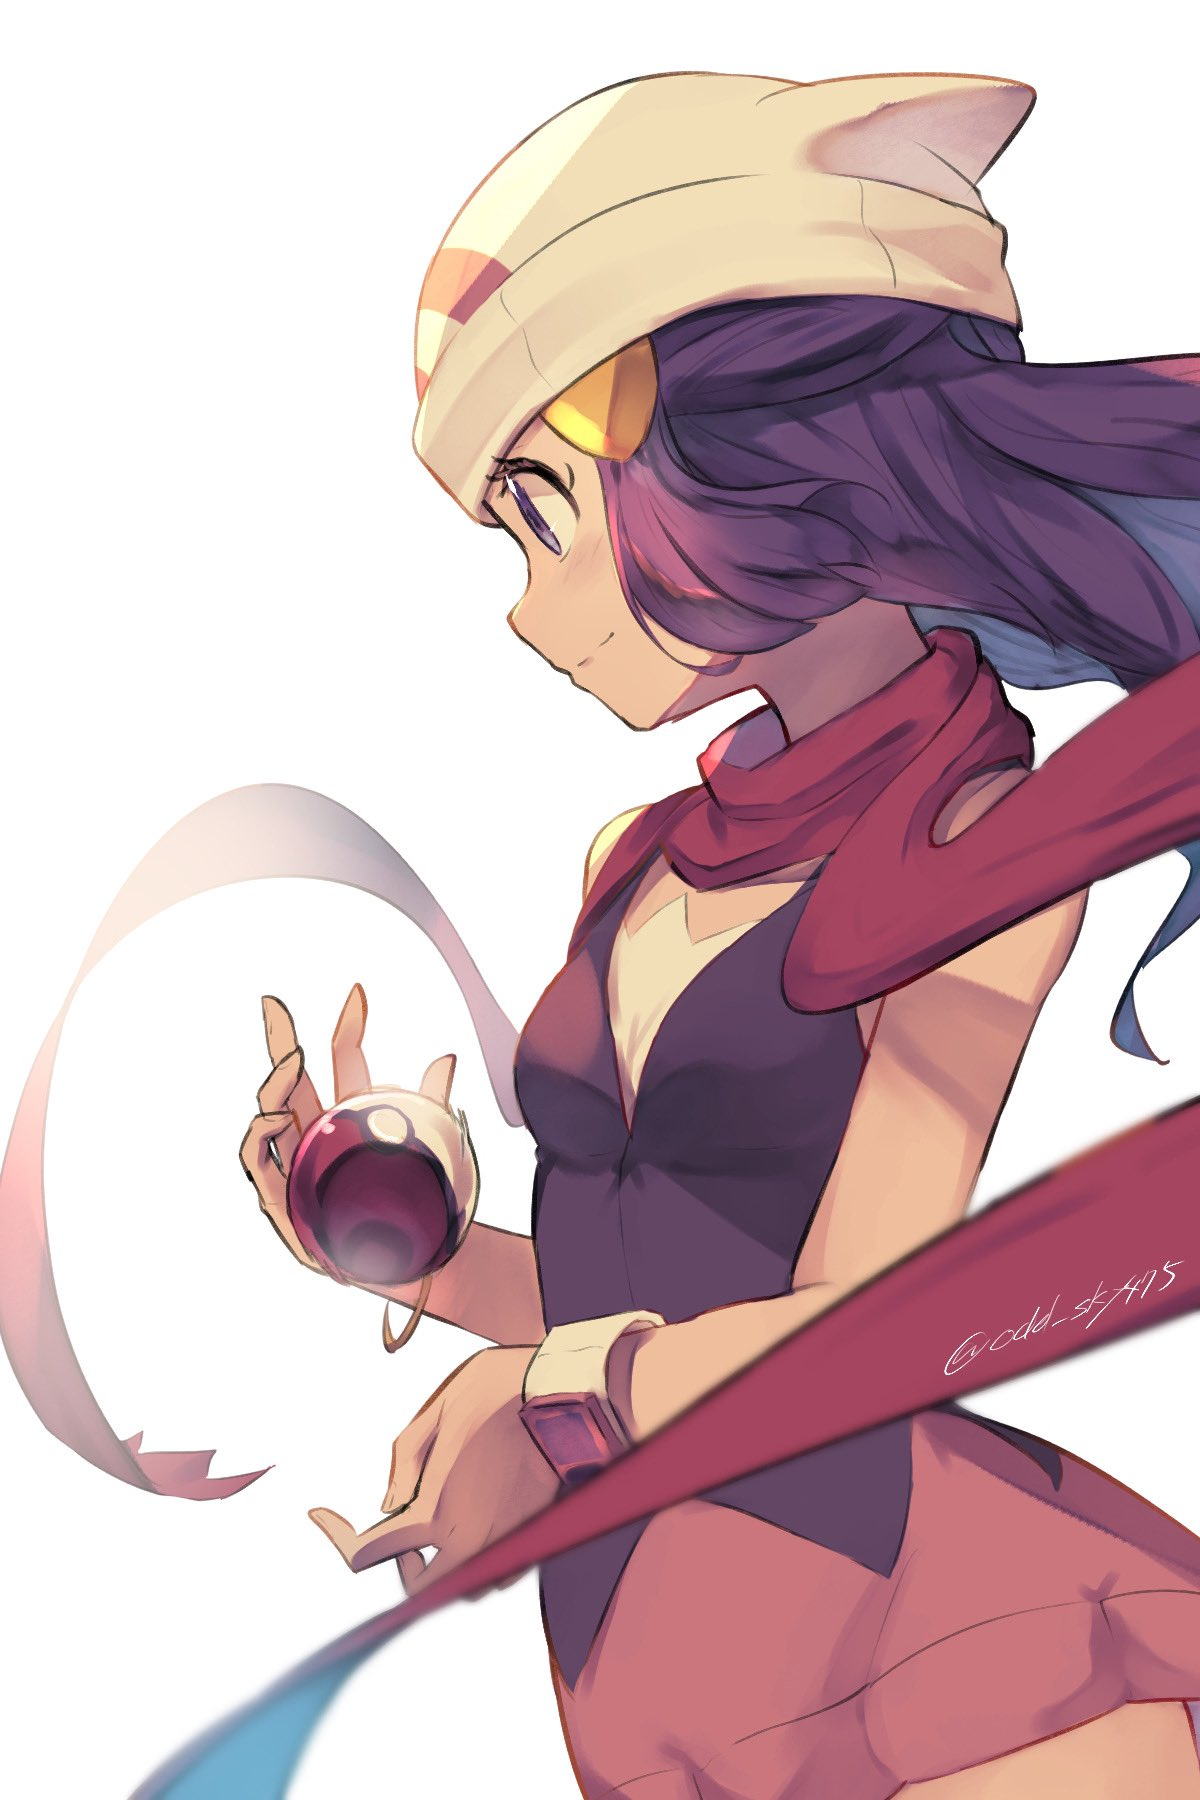 1girl artist_name beanie blush closed_mouth commentary_request dawn_(pokemon) eyelashes floating_hair grey_eyes hat highres holding holding_poke_ball light_smile long_scarf odd_(hin_yari) poke_ball poke_ball_(basic) pokemon pokemon_(game) pokemon_dppt purple_hair red_scarf scarf solo watermark white_background white_headwear